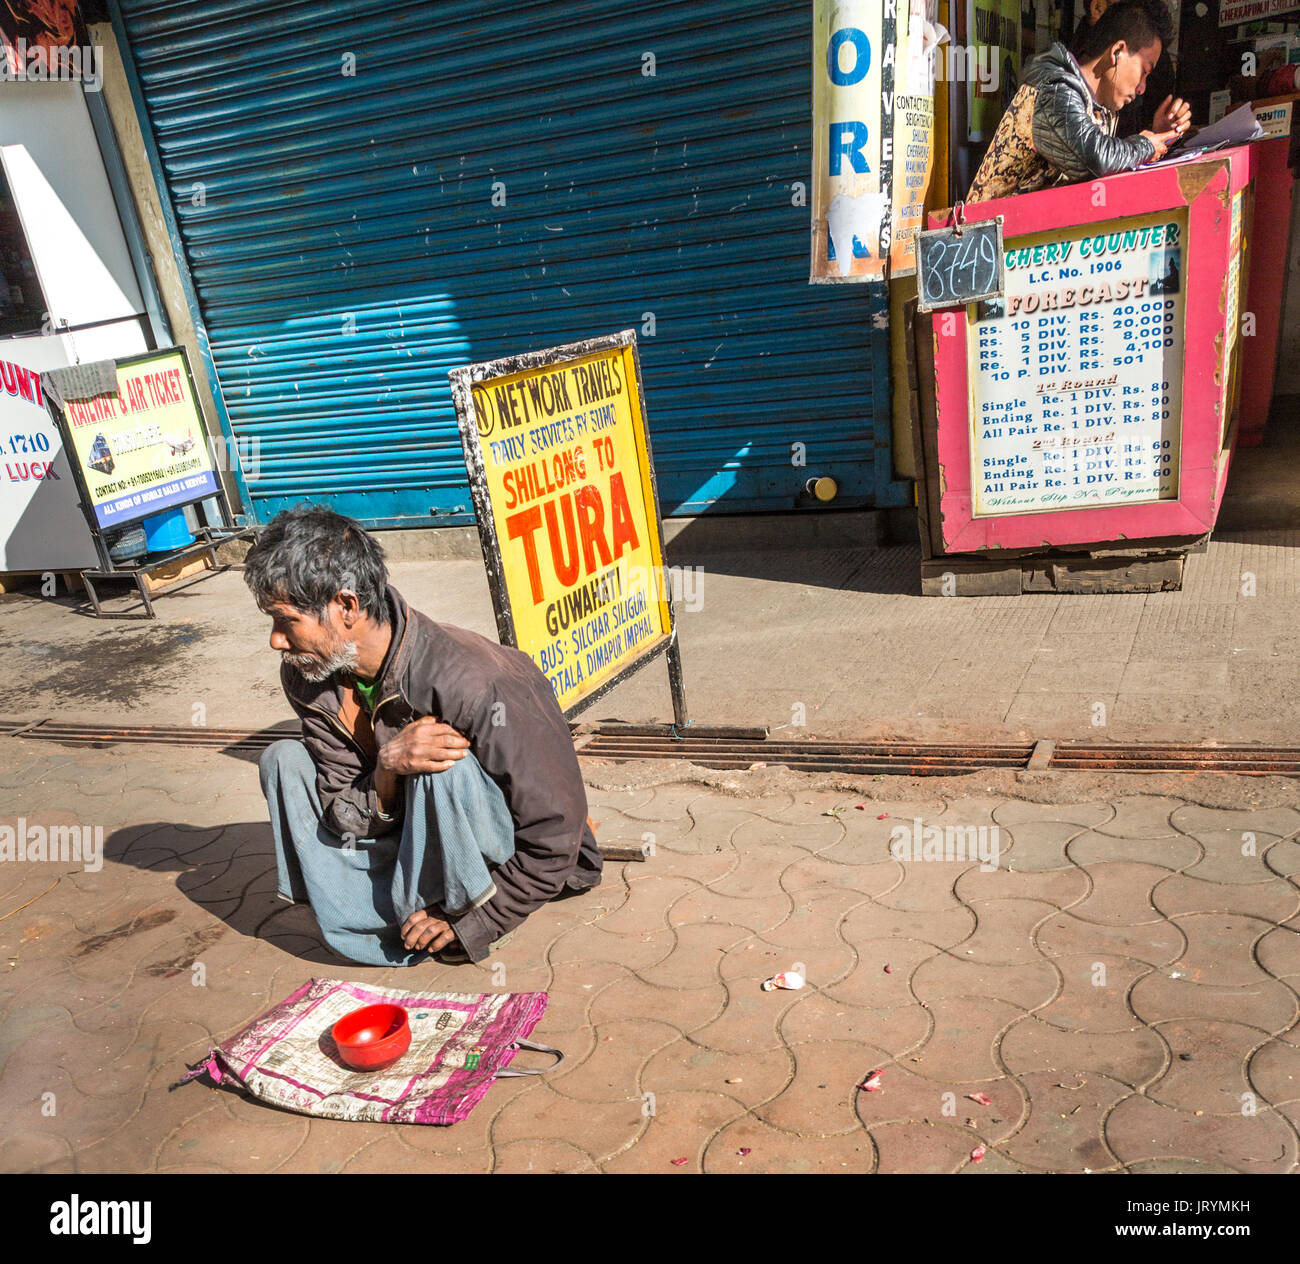 Begging in street in front of betting office, Shillong, Meghalaya, India - Stock Image